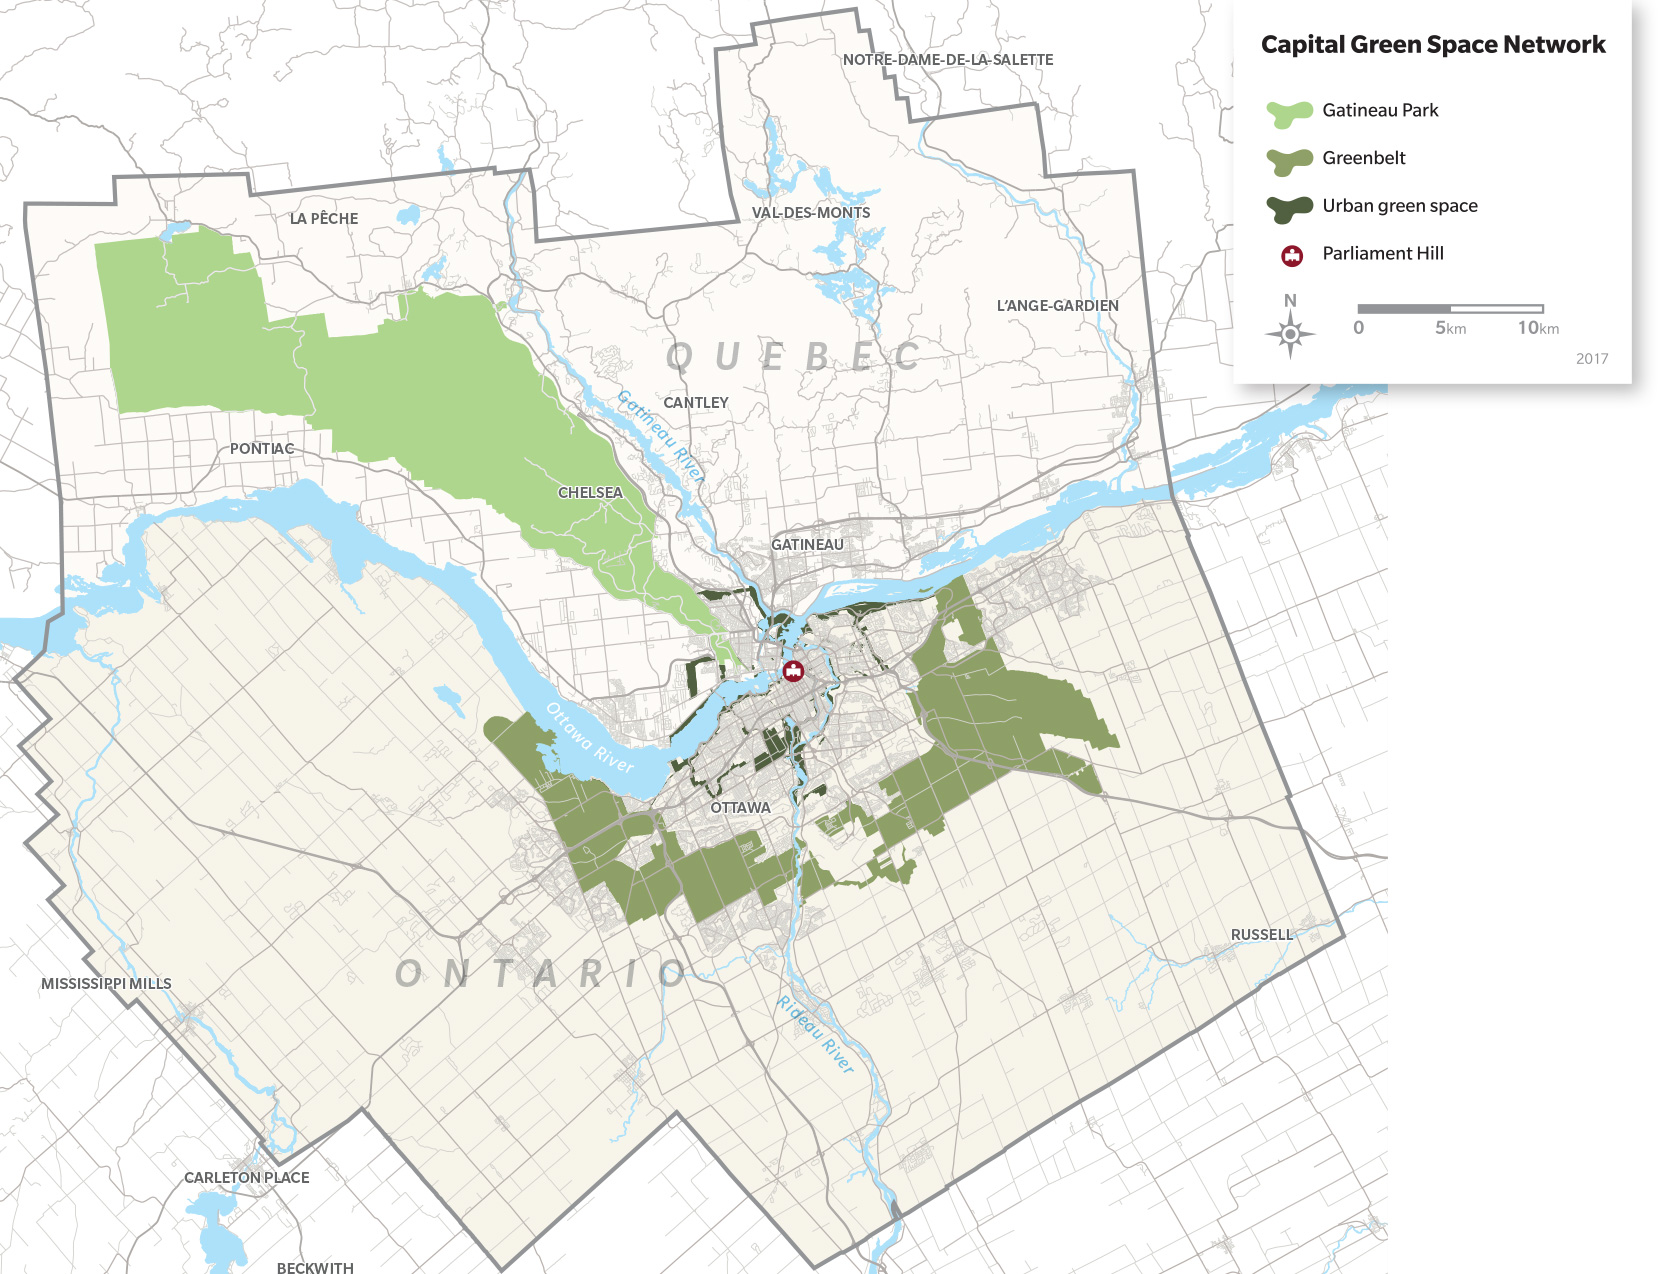 Capital Green Space Network